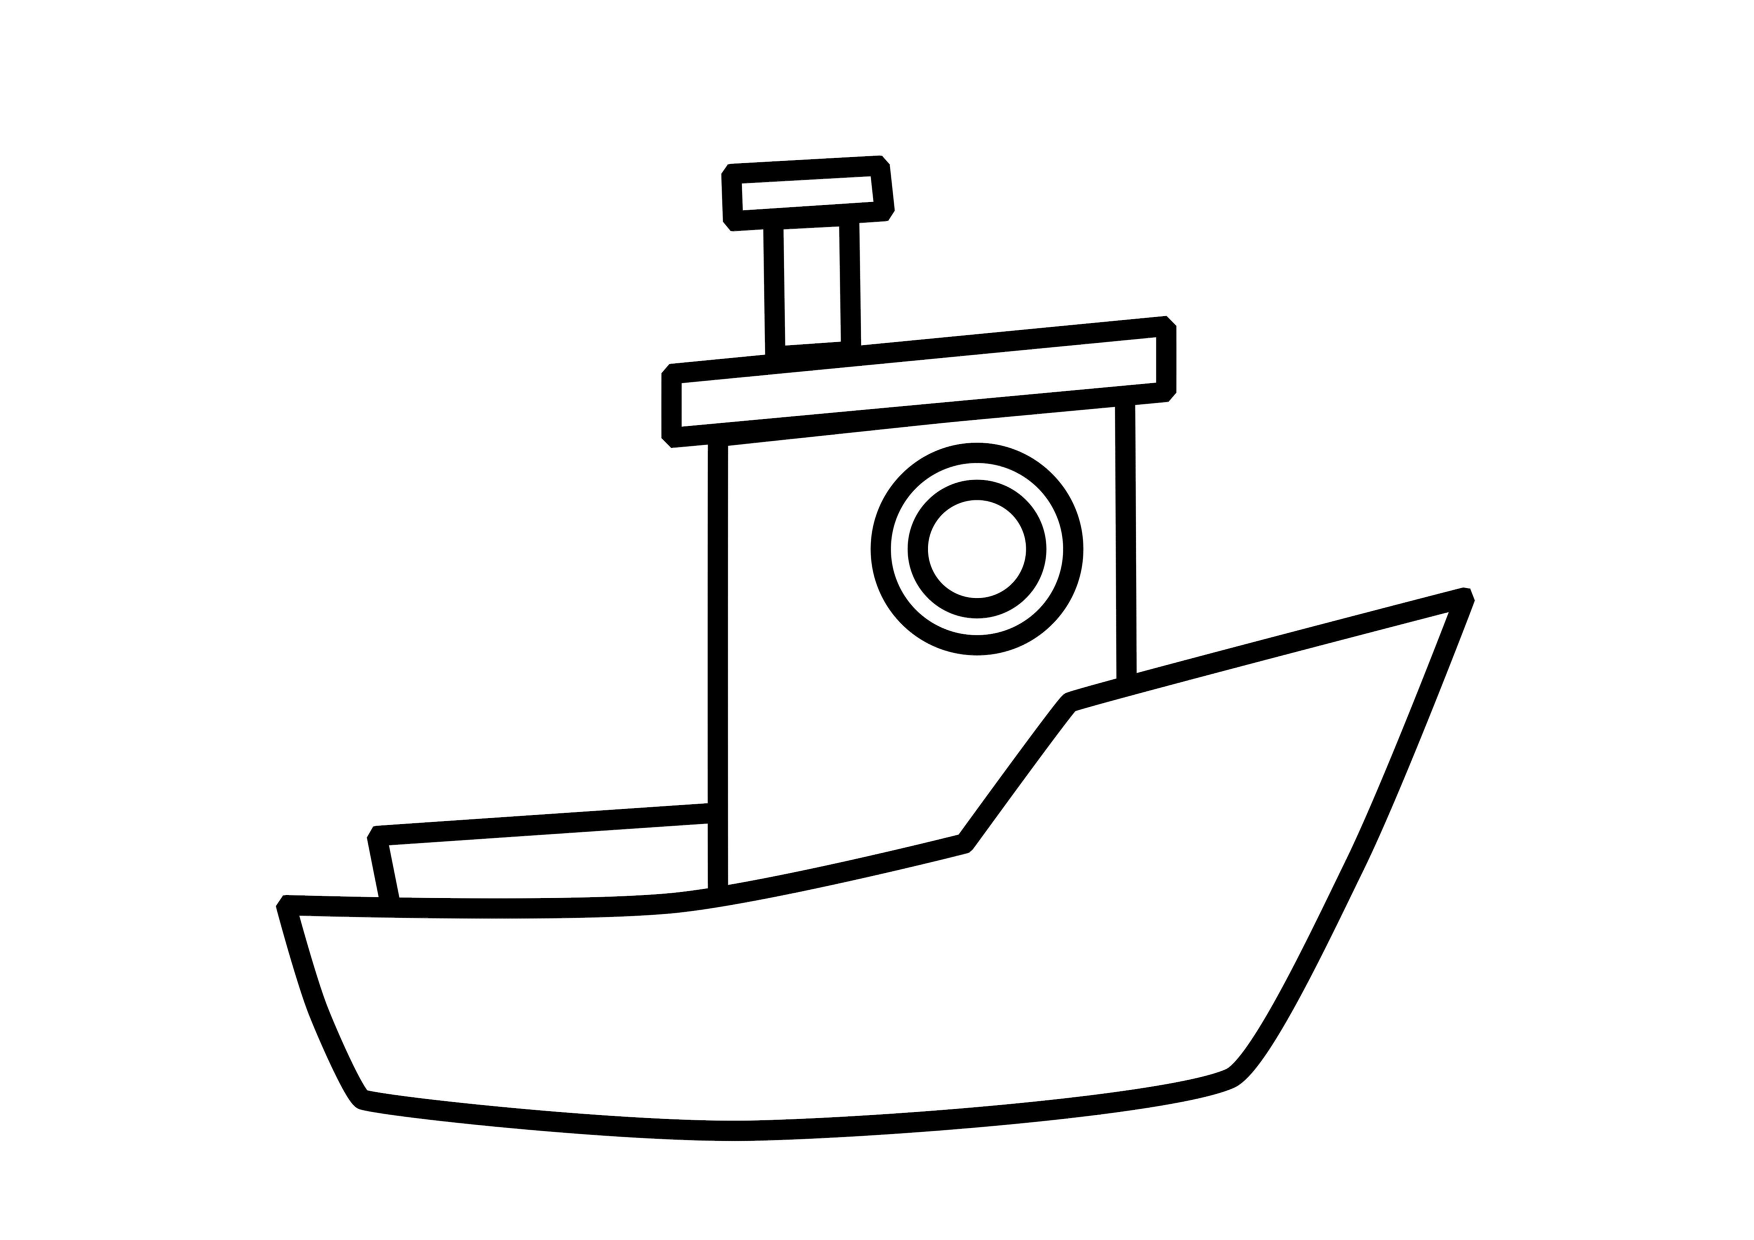 printable boat pictures 21 printable boat coloring pages free download http pictures boat printable